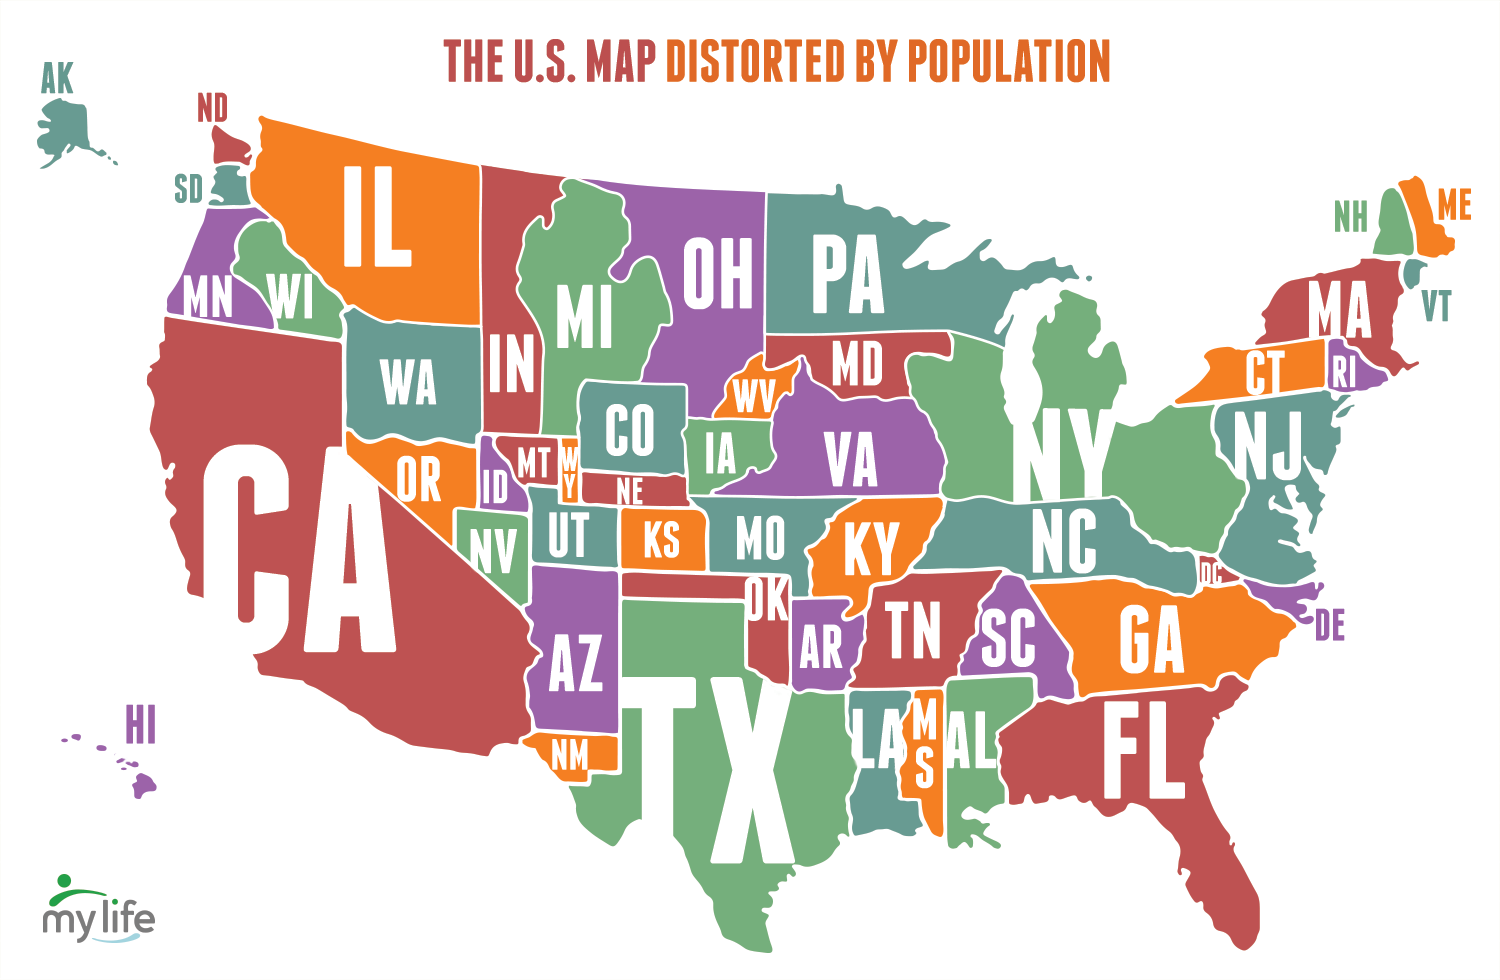 Map Of The United States Distorted By Population - Wyoming-us-map